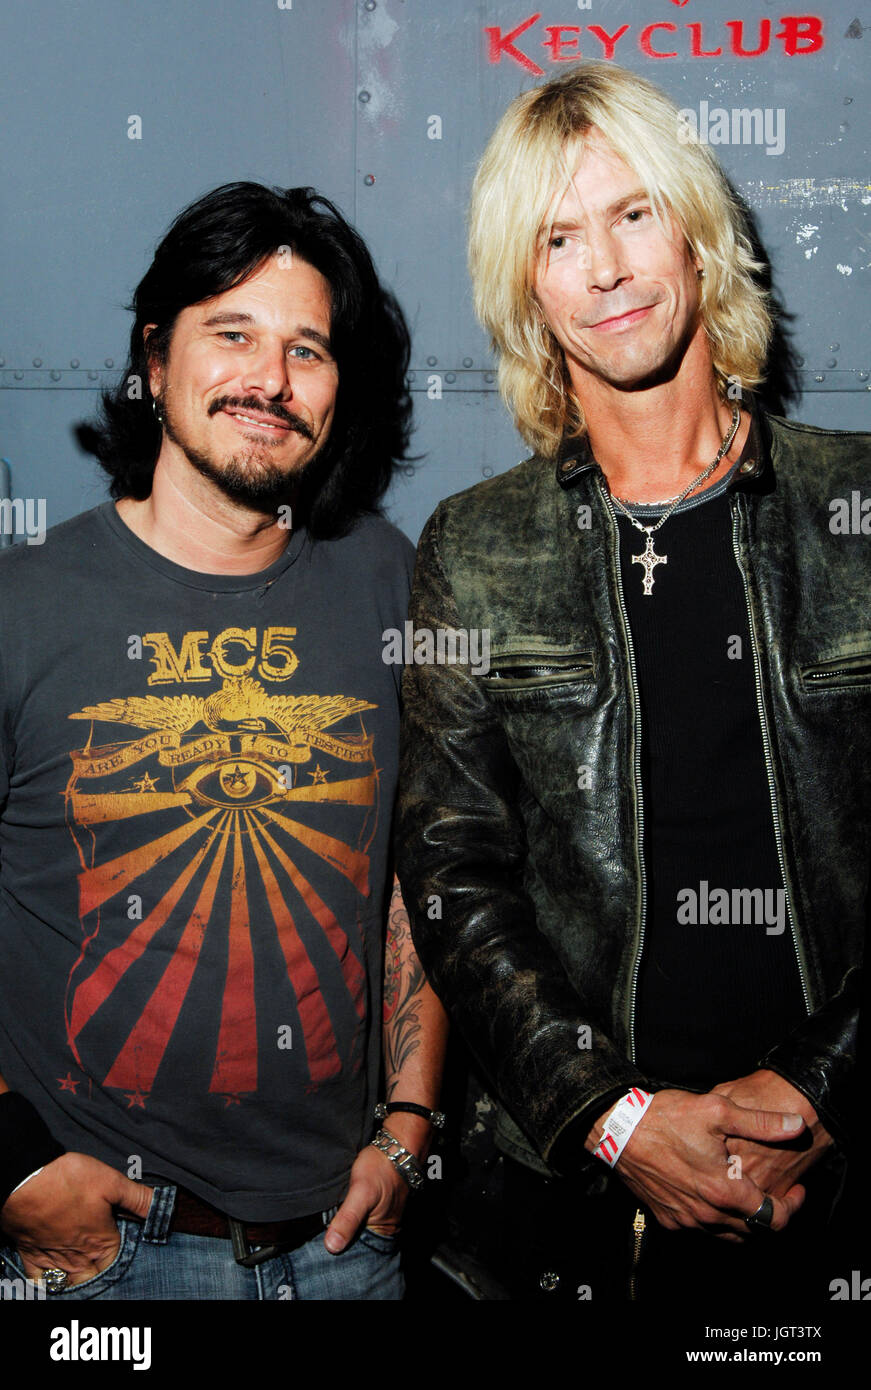 Gilby Clarke,Duff Mckagan backstage 20 year anniversary Guns N' Roses 'Appetite for Destruction' Adler's - Stock Image